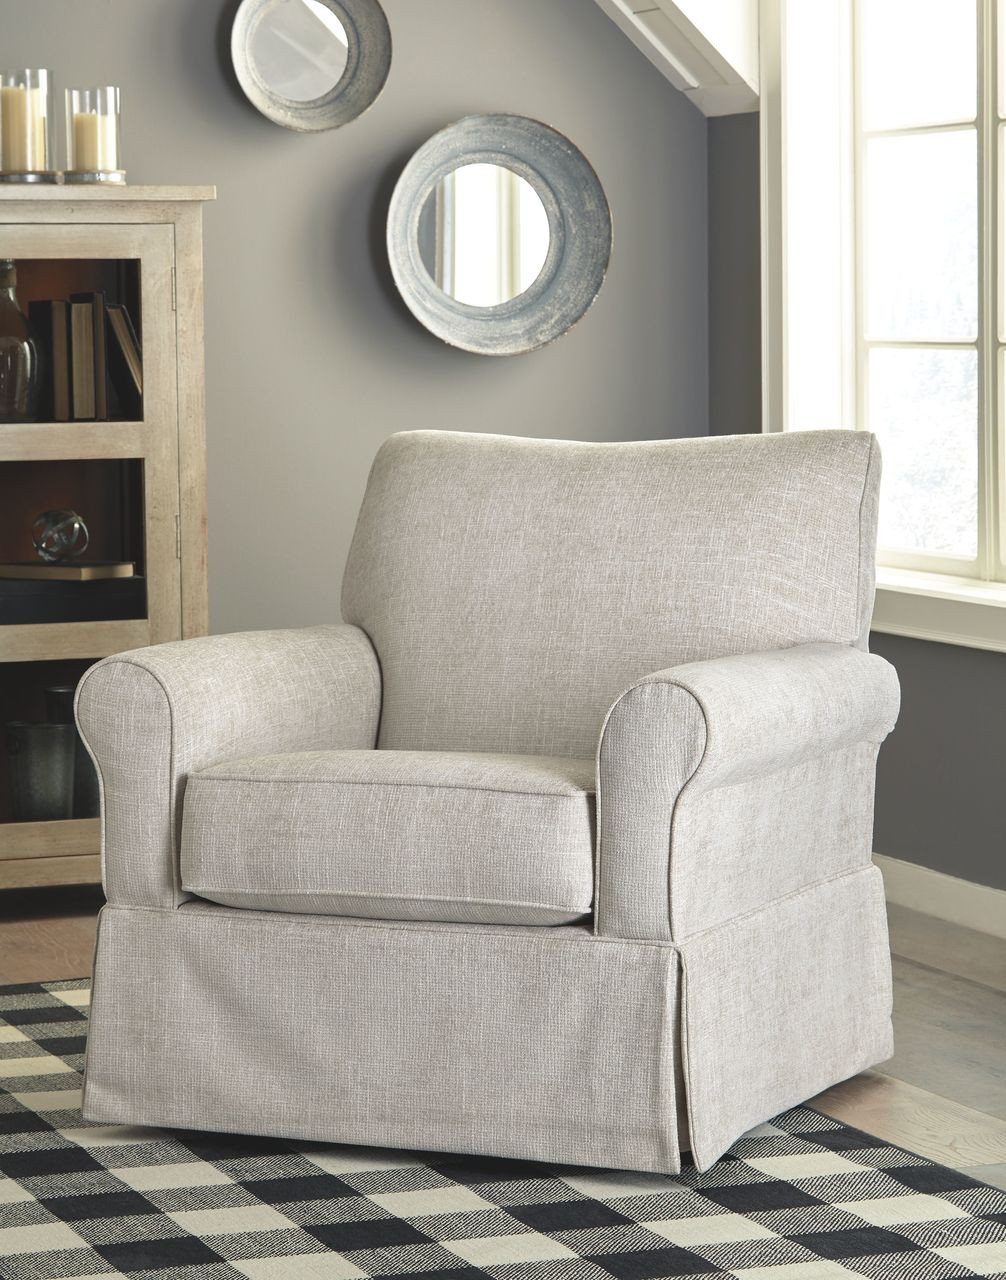 Rent A Center Accent Chairs.Searcy Quartz Swivel Glider Accent Chair